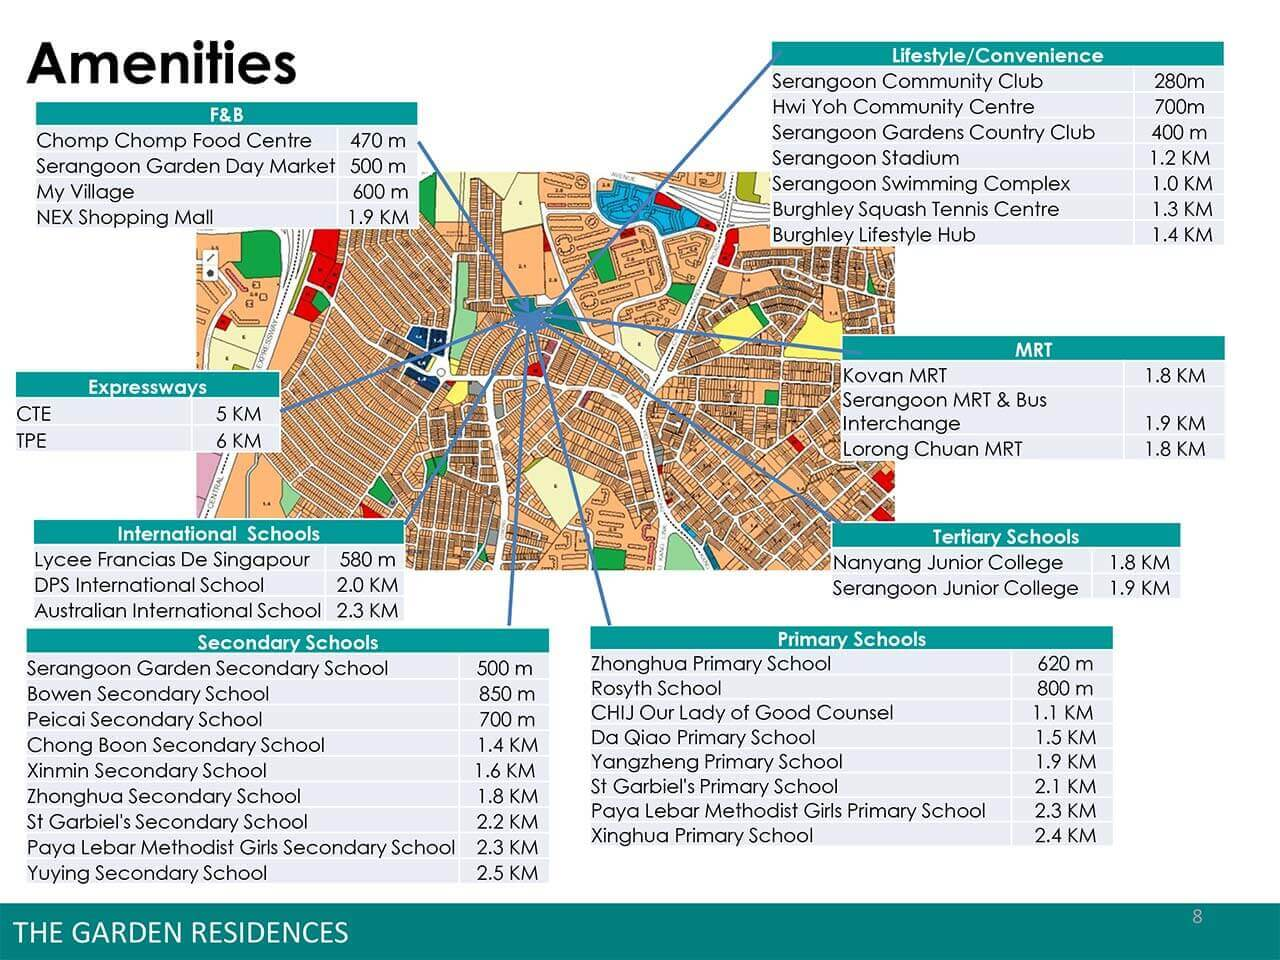 Amenities-Info-around-Garden-Residences